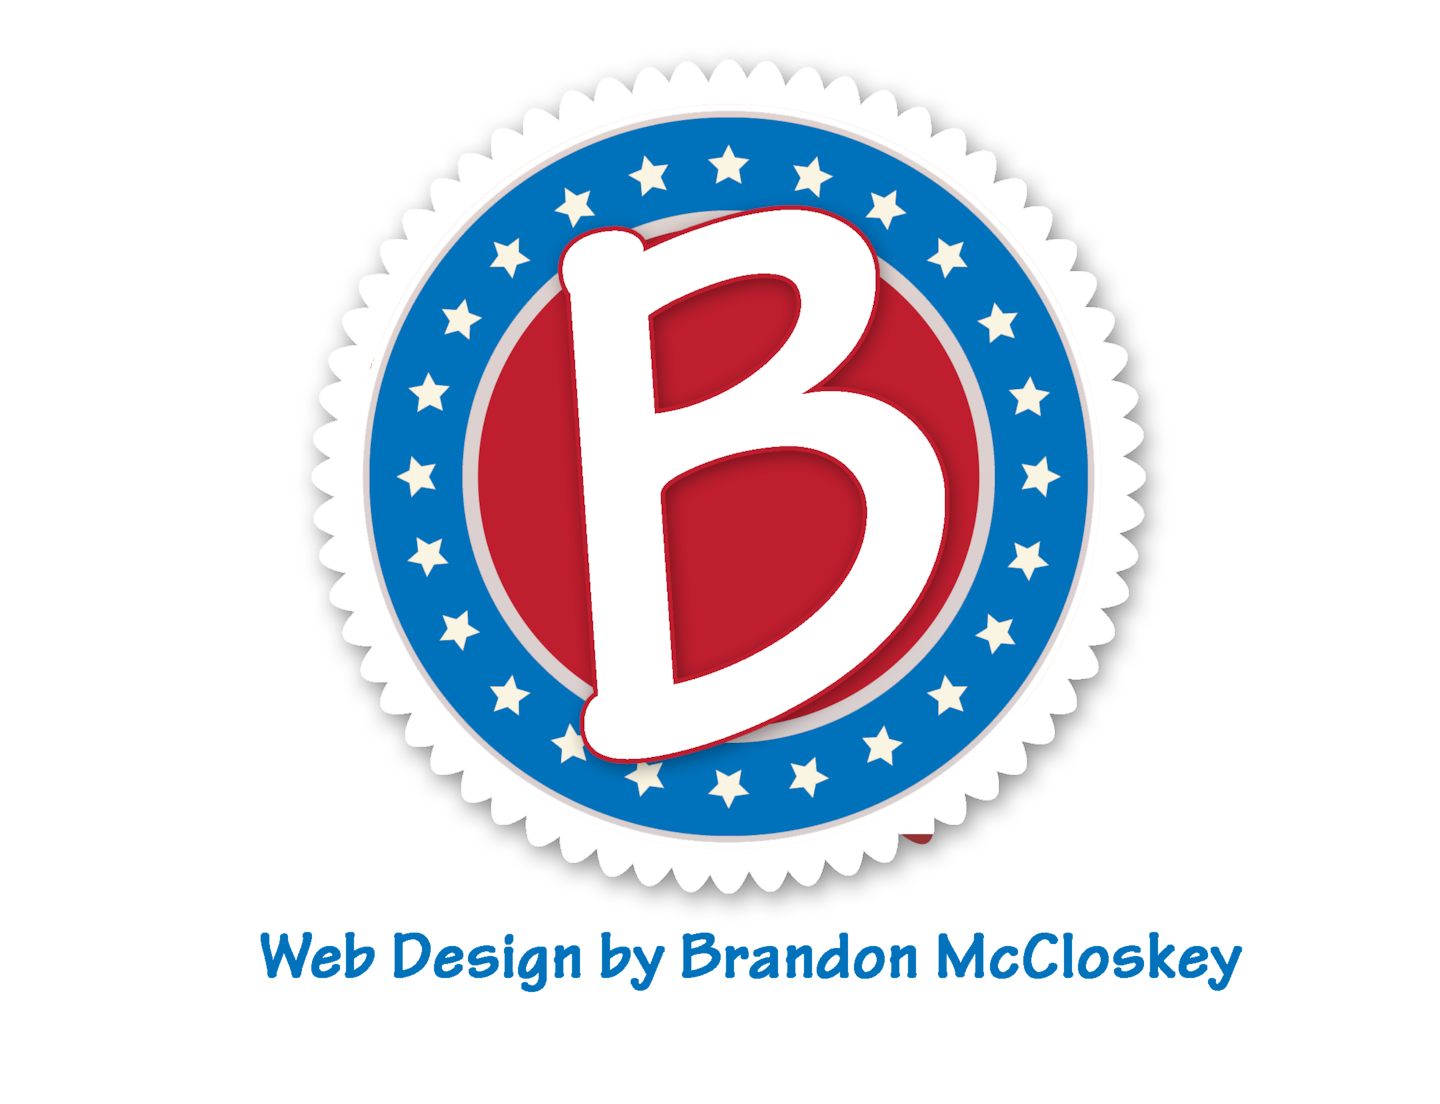 Web Design by Brandon McCloskey